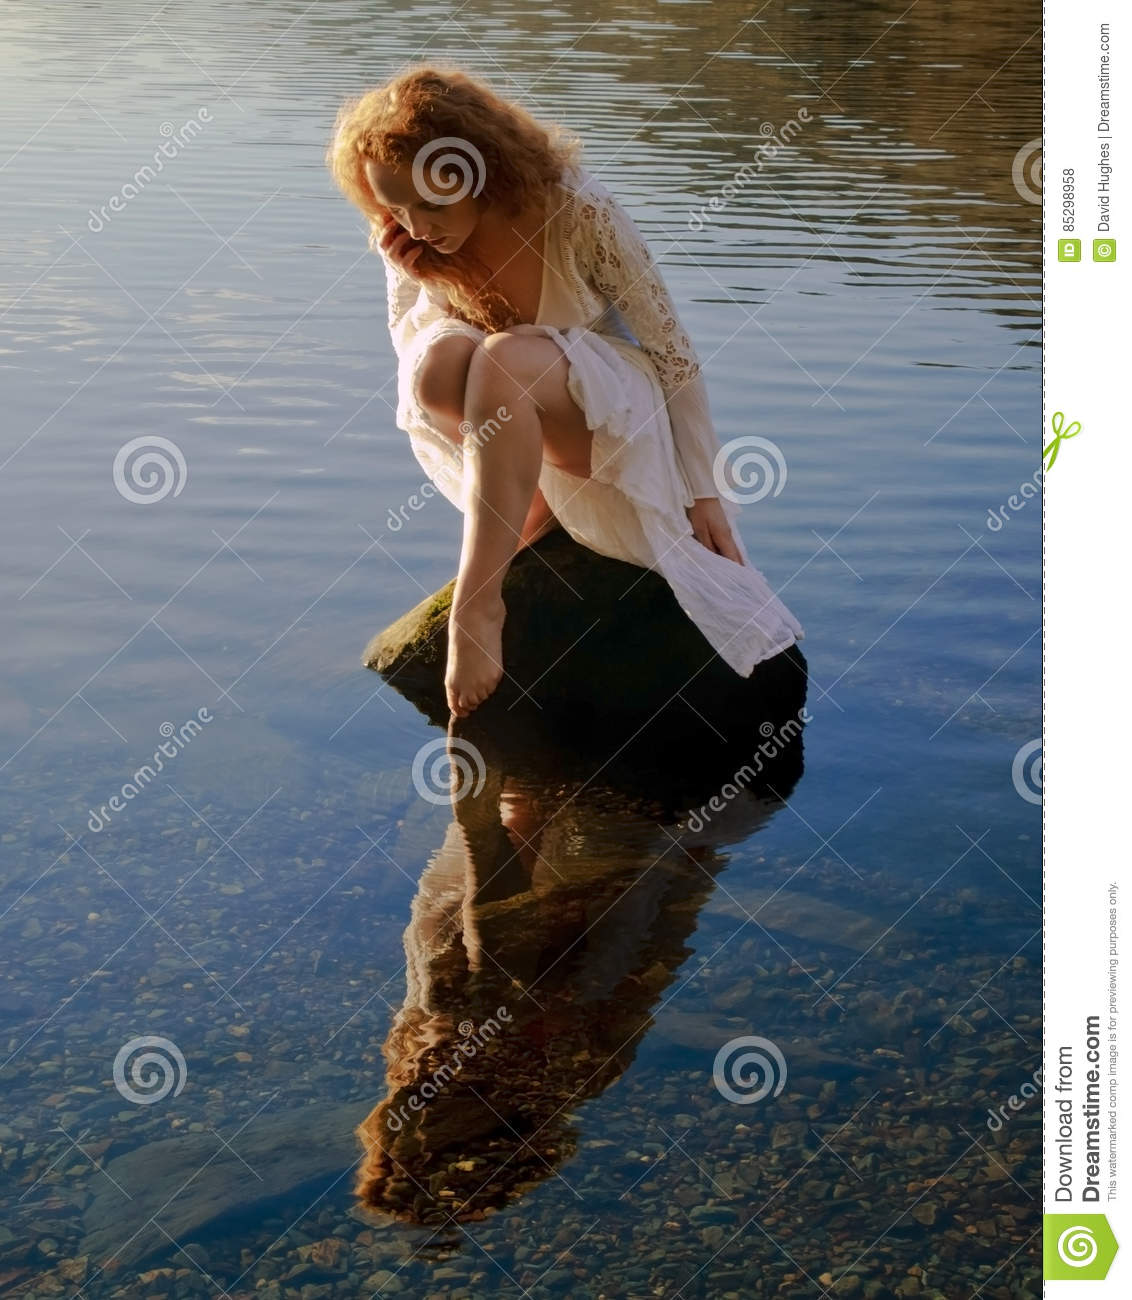 Beautiful girl with red hair reflected in ripples and still water